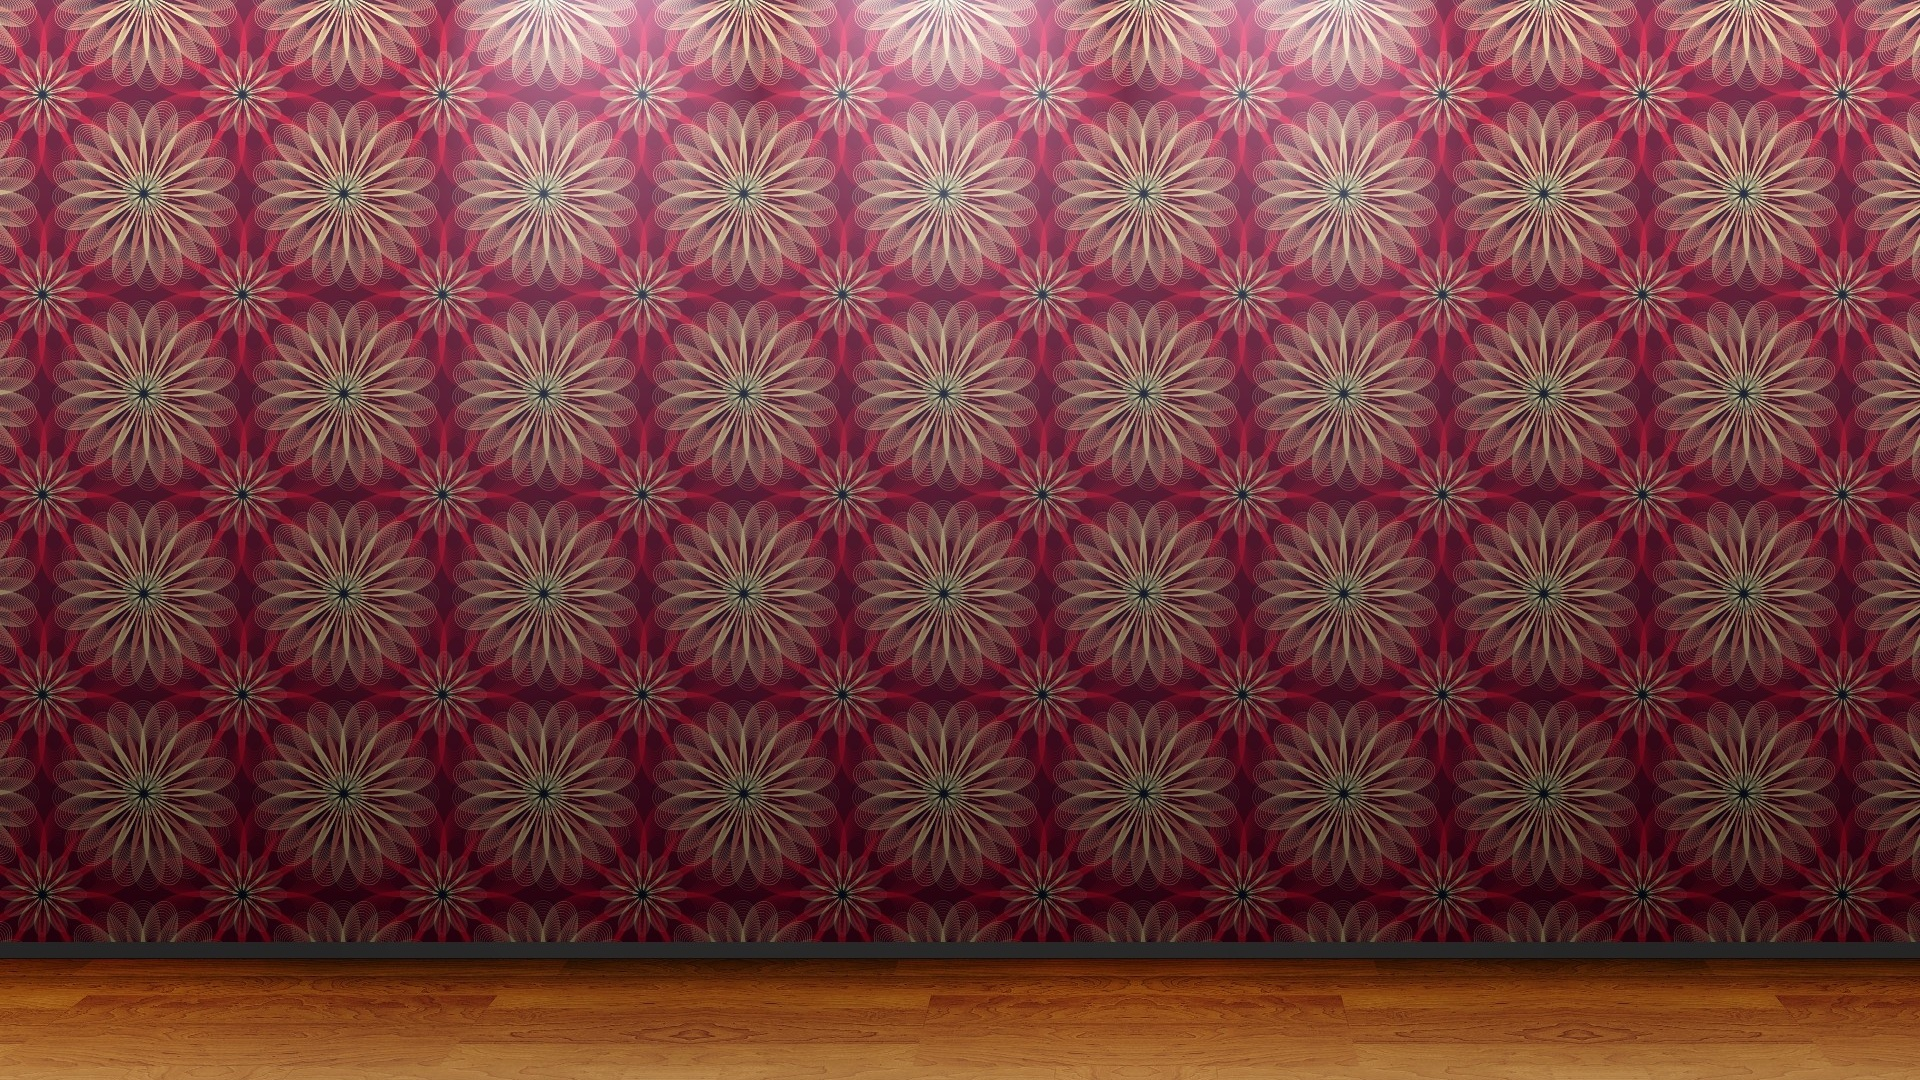 1920x1080 floral wall pattern desktop pc and mac wallpaper 1 wall wallpaper